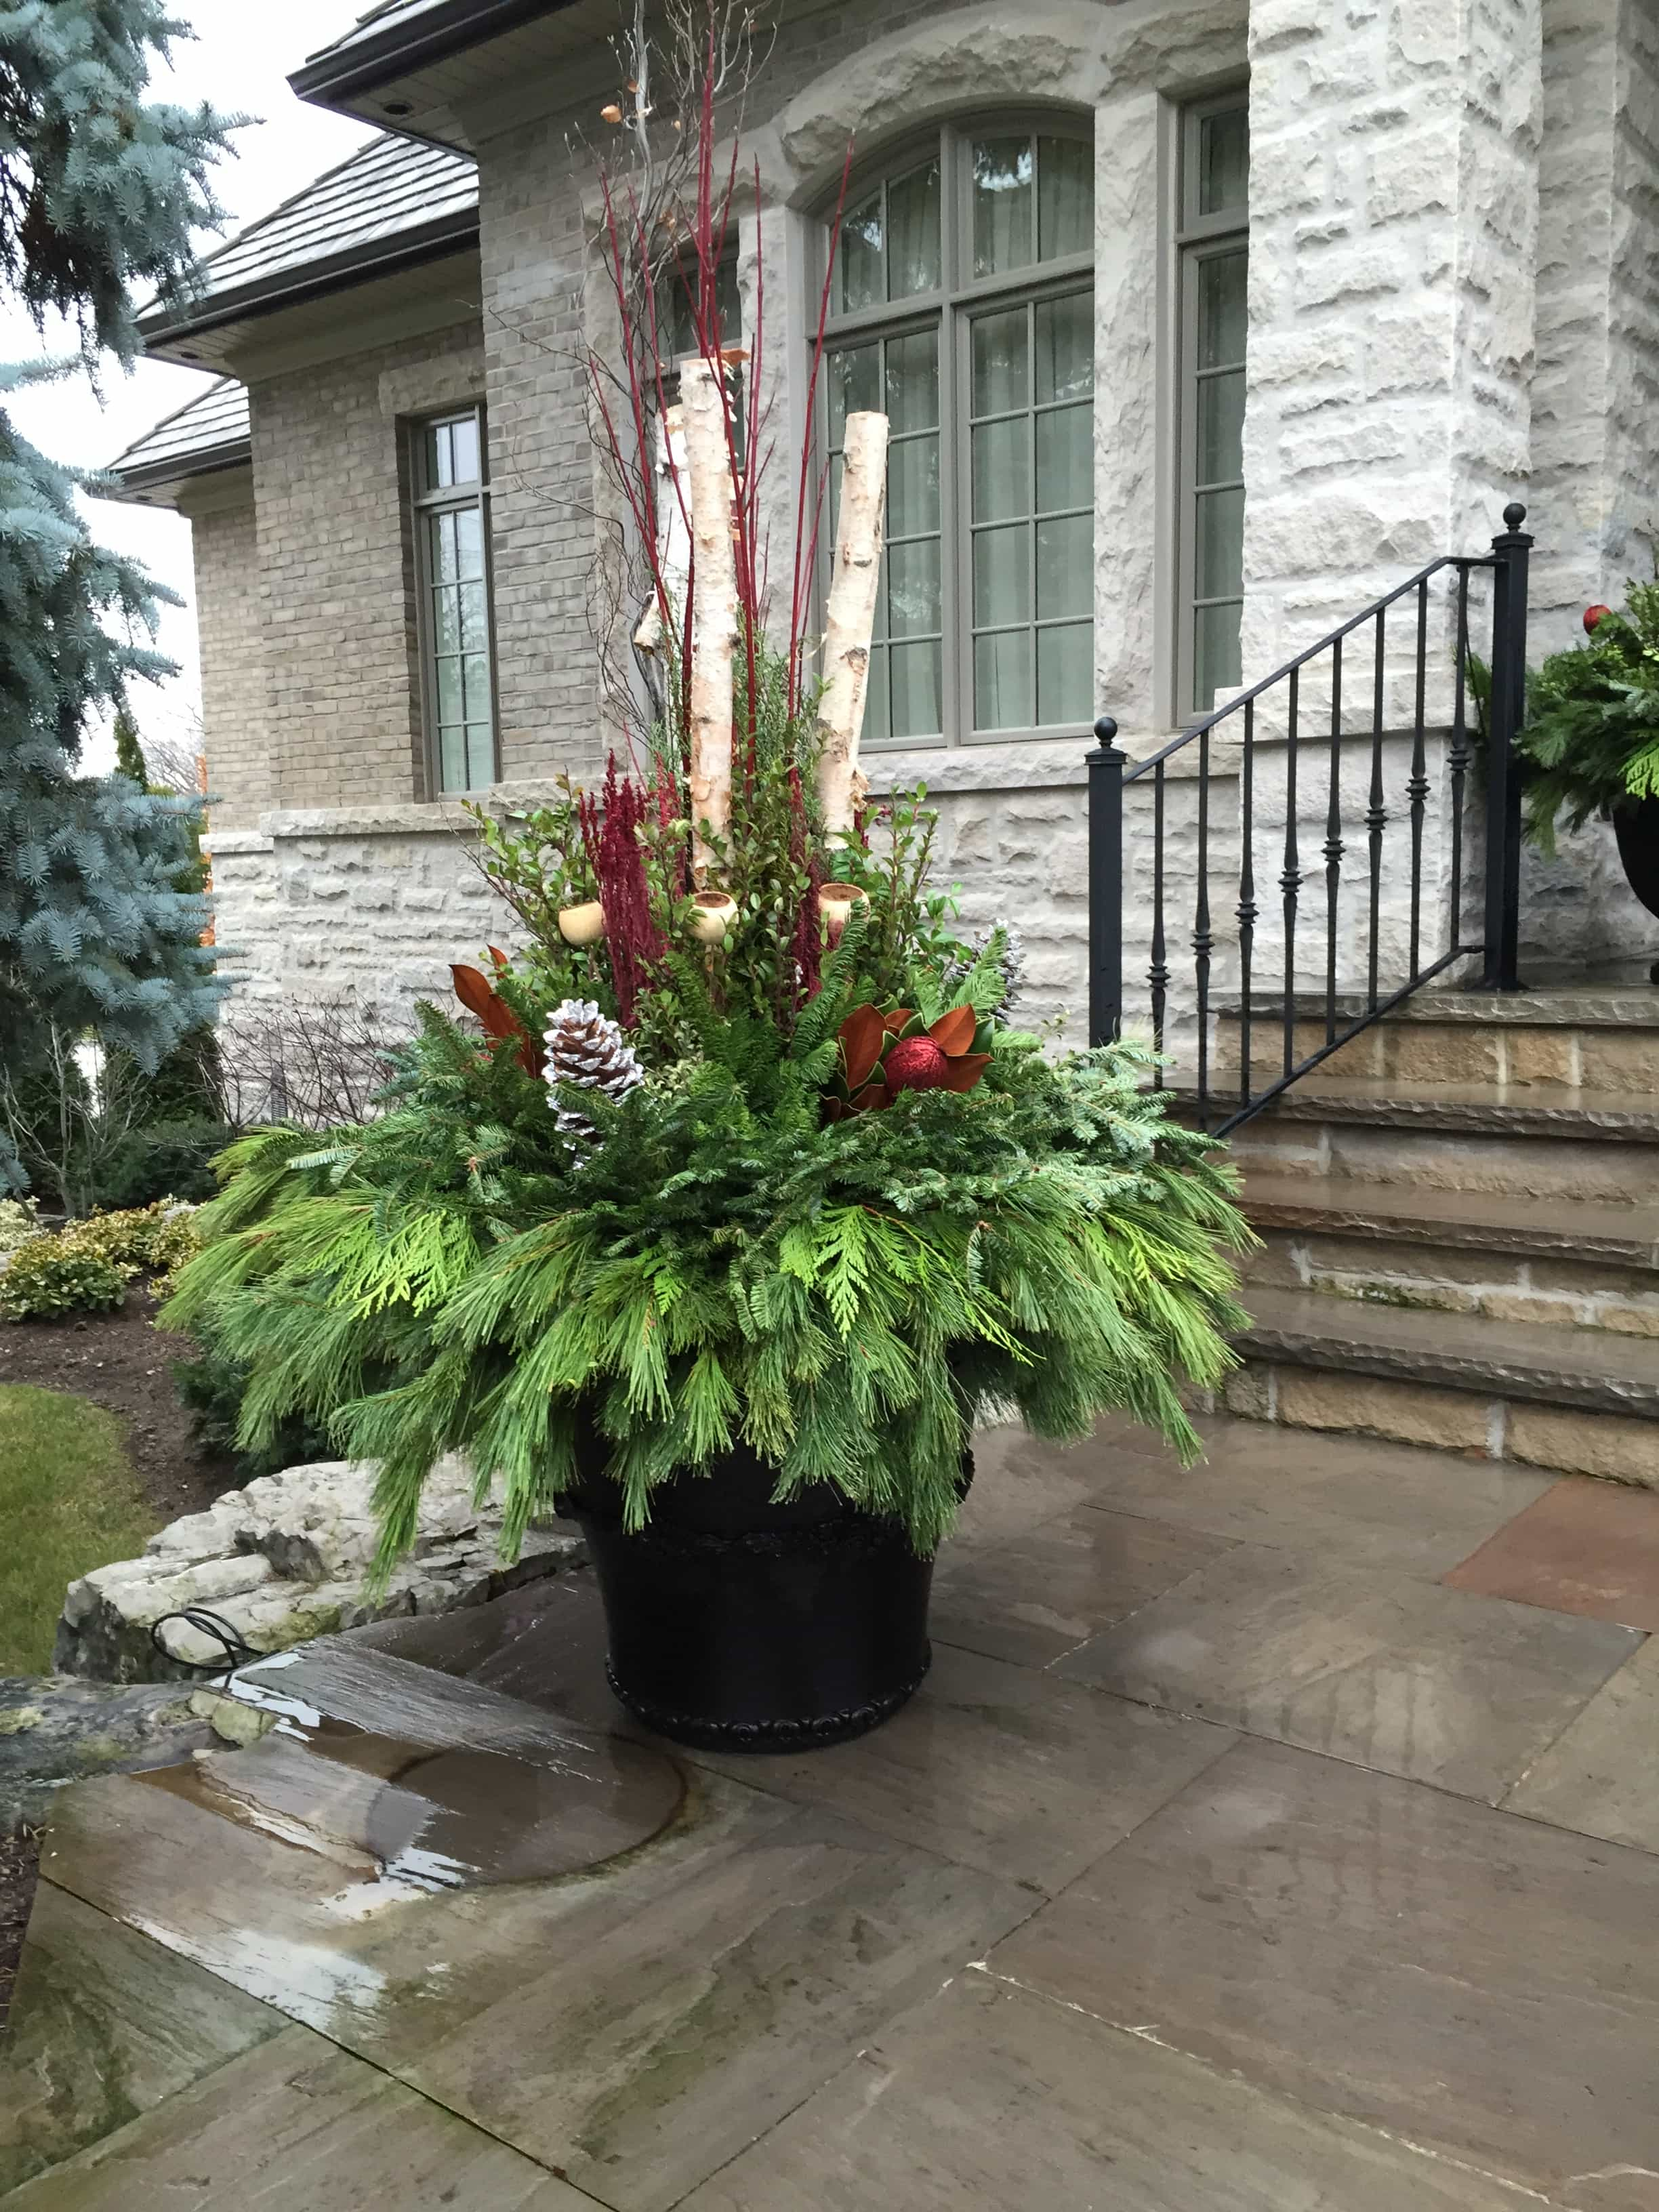 Seasonal pots and planters